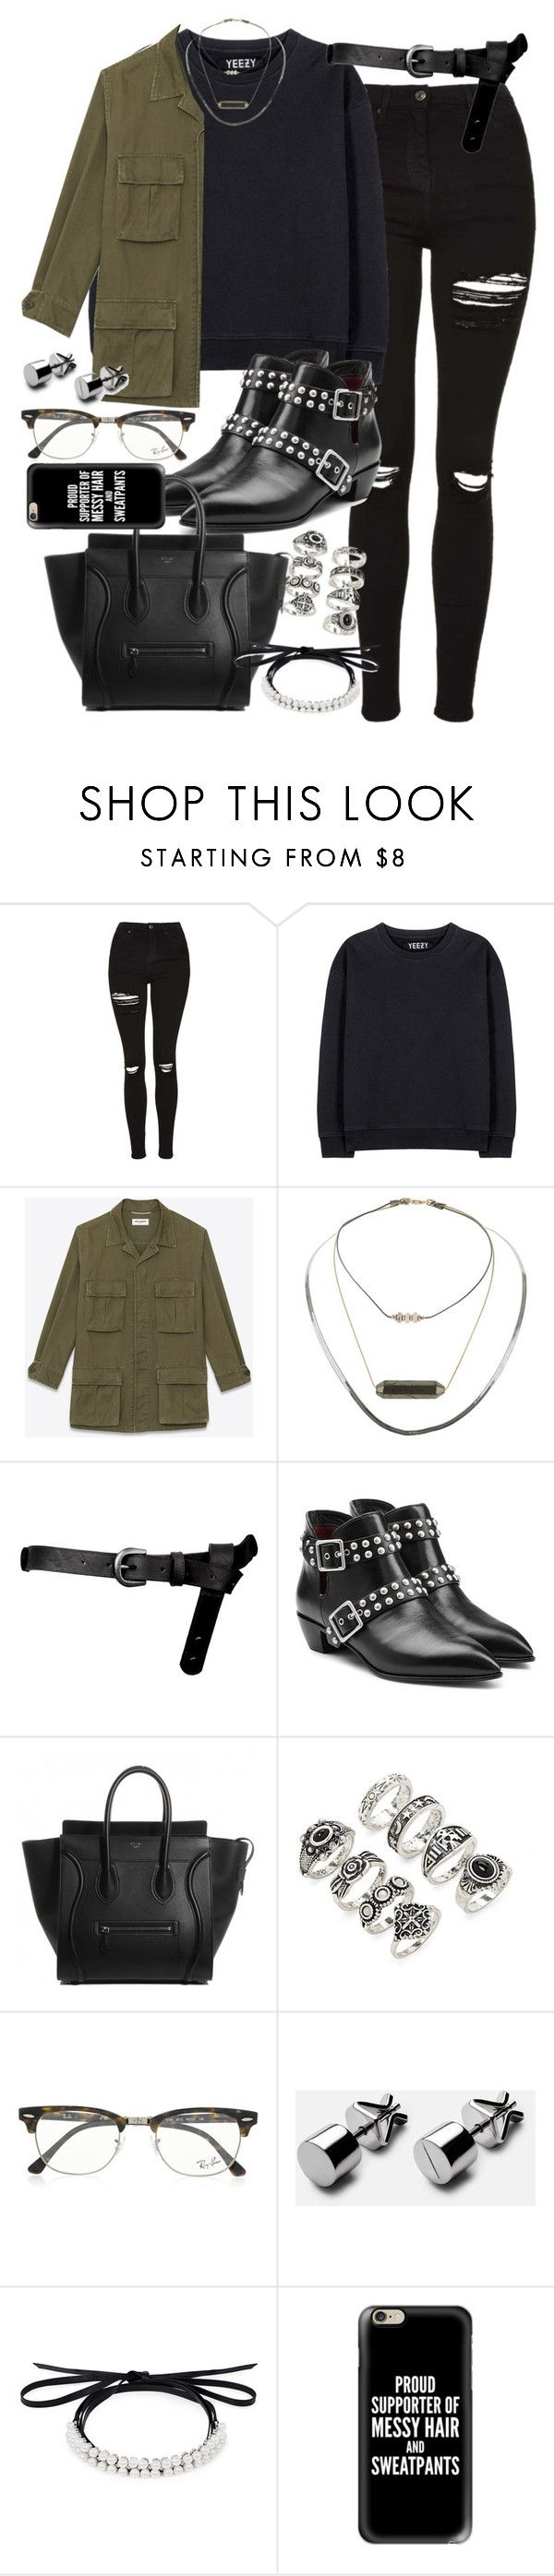 """Outfit for university with a tote bag"" by ferned ❤ liked on Polyvore featuring Topshop, adidas Originals, Yves Saint Laurent, ASOS, Marc by Marc Jacobs, Forever 21, Ray-Ban, Fallon and Casetify"